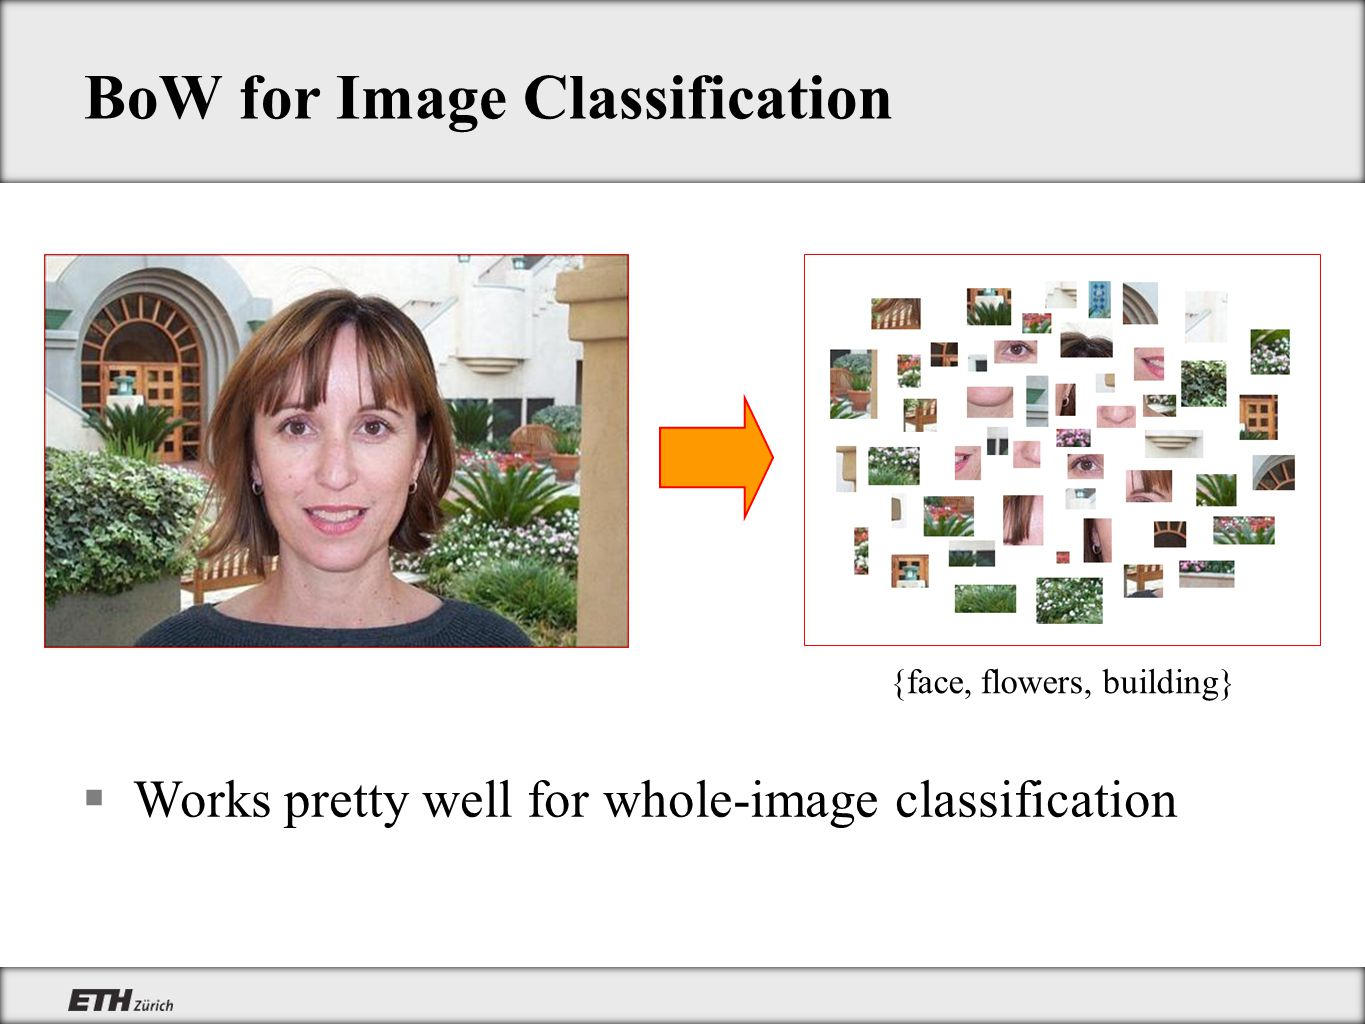 BoW for Image Classification